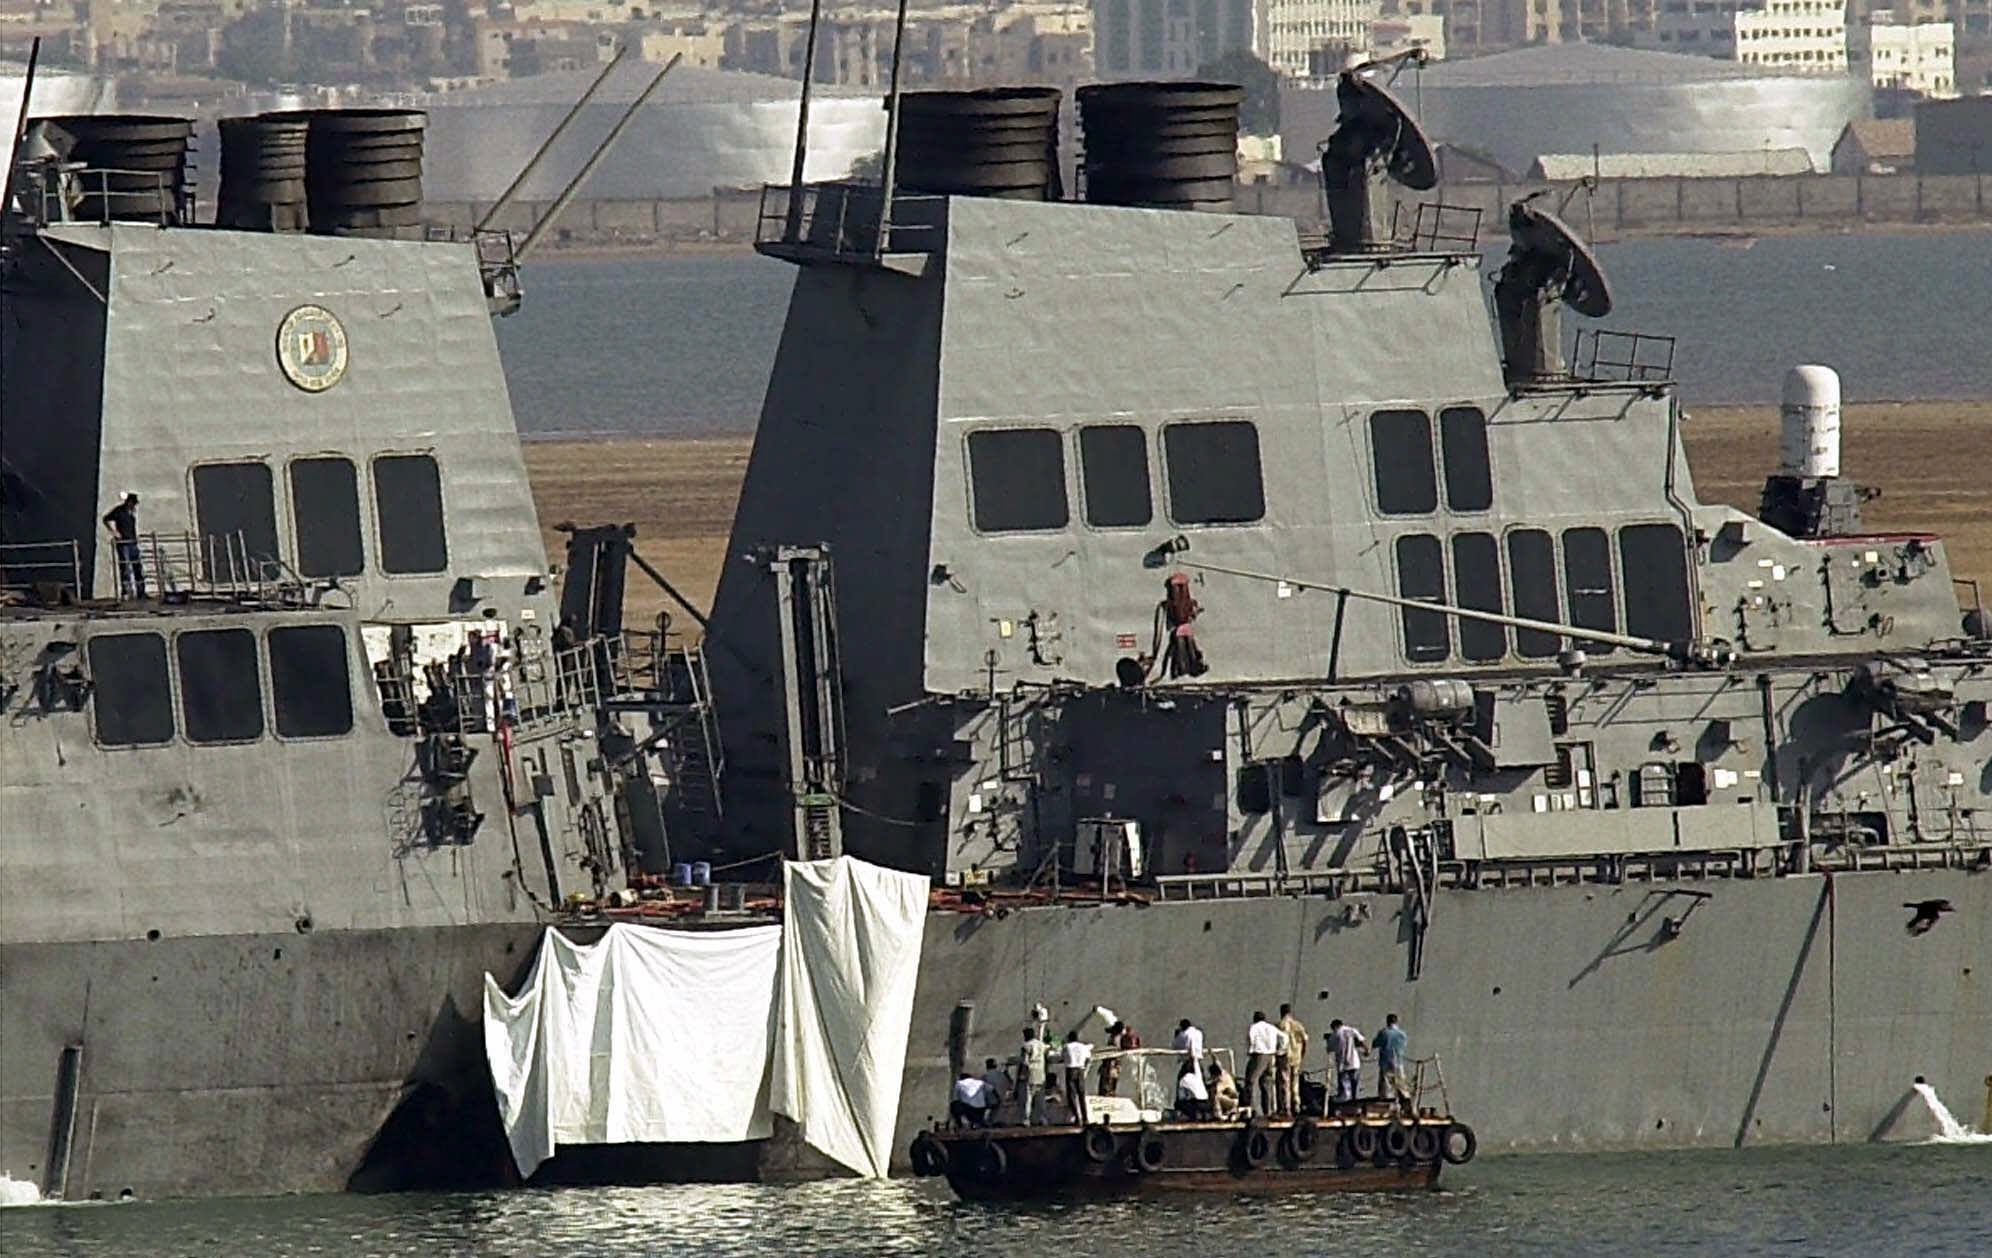 United States  says airstrike targeted militant tied to USS Cole bombing